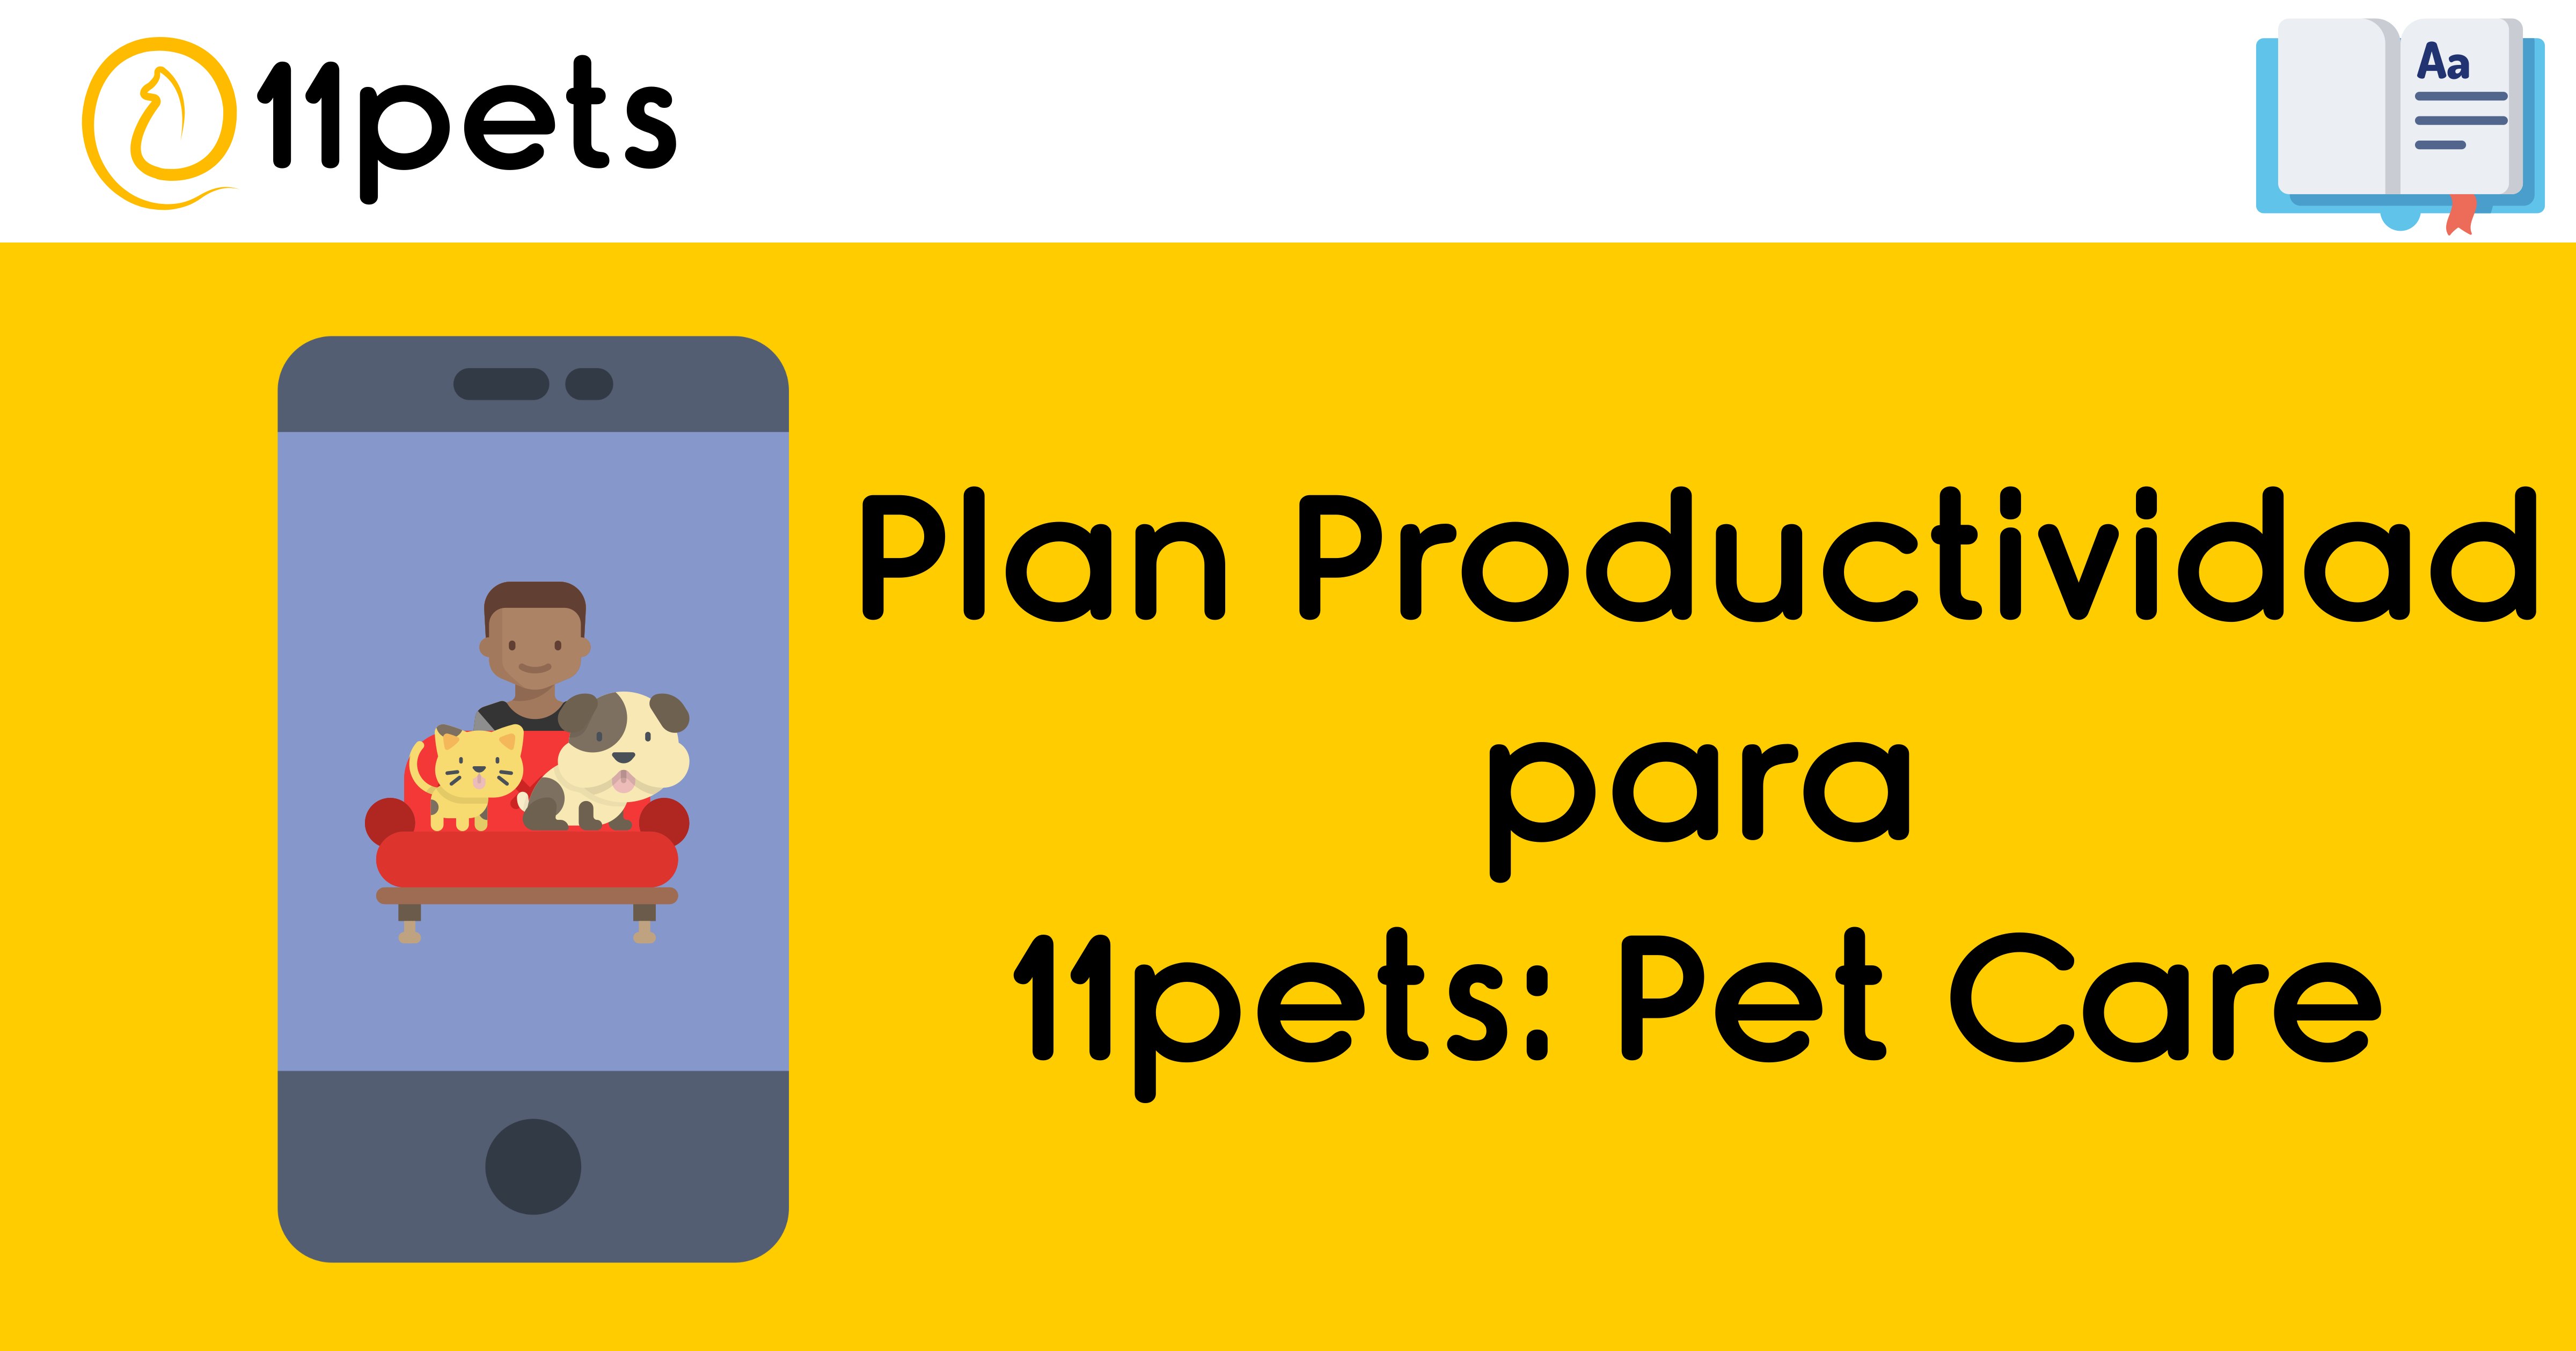 Plan Productividad para 11pets: Pet Care